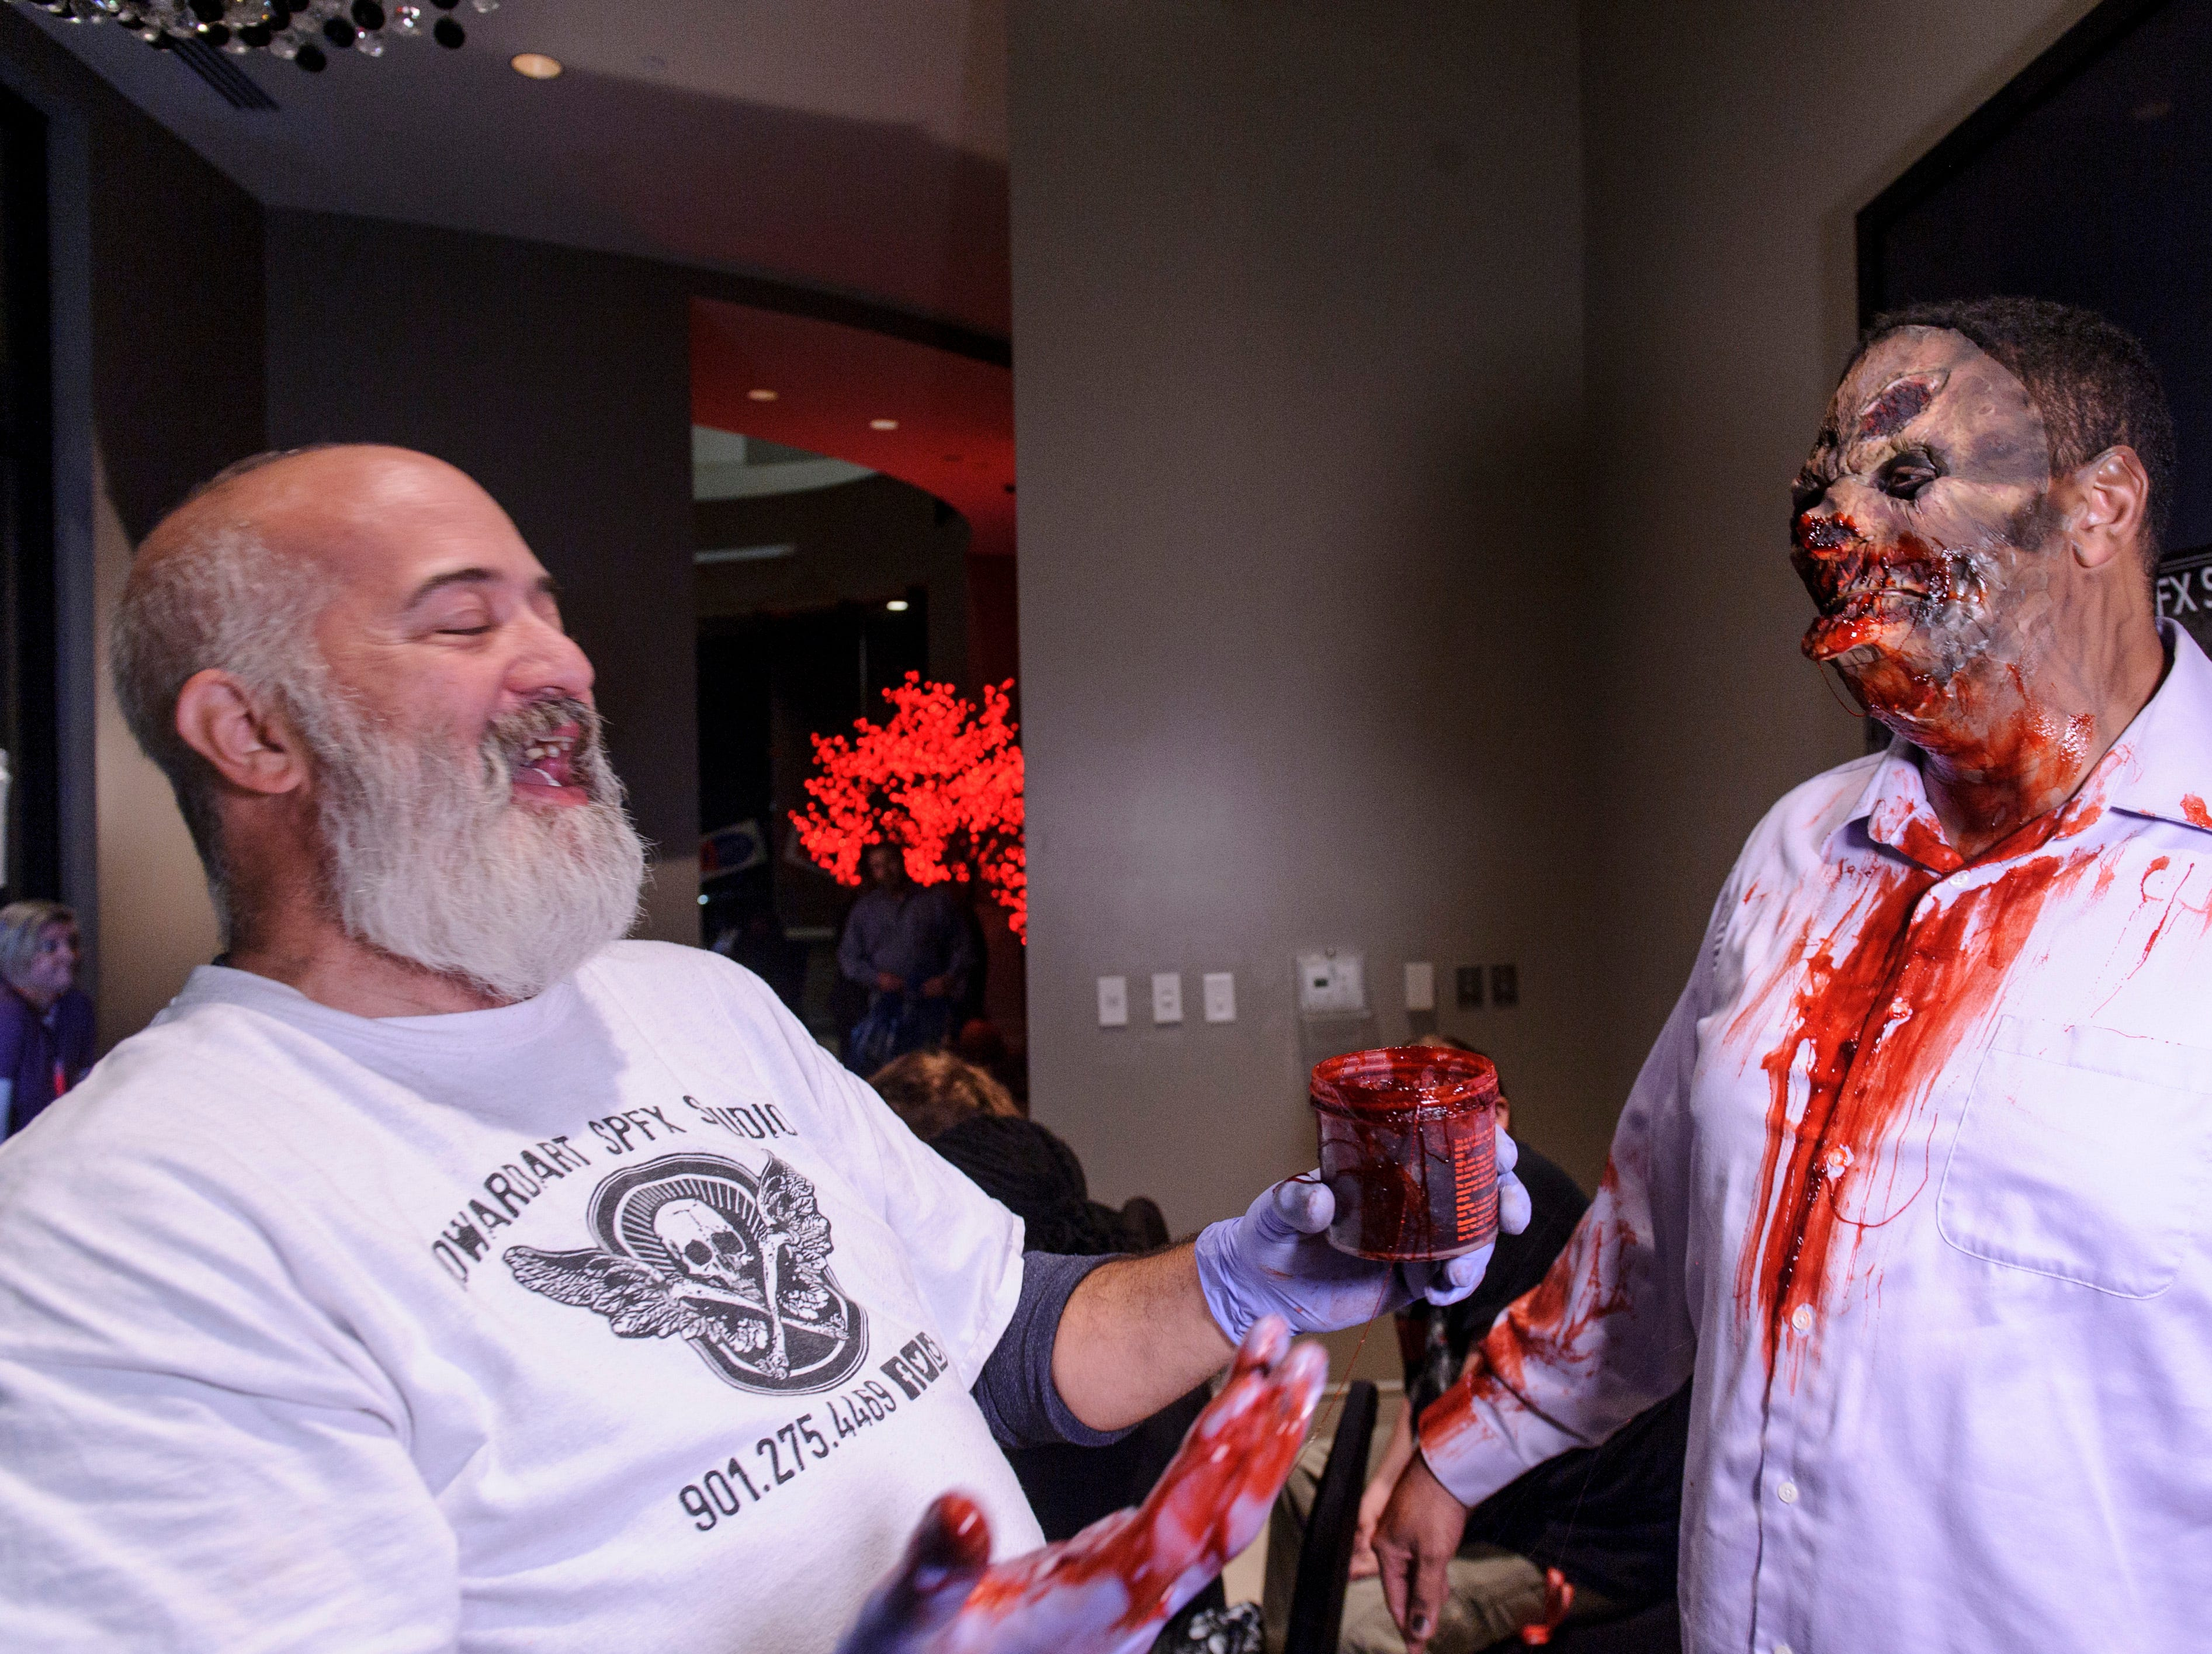 Artist A.G. Howard applies blood to Andrew Woods at the Zombie Prom on Saturday, Oct. 20, 2018.